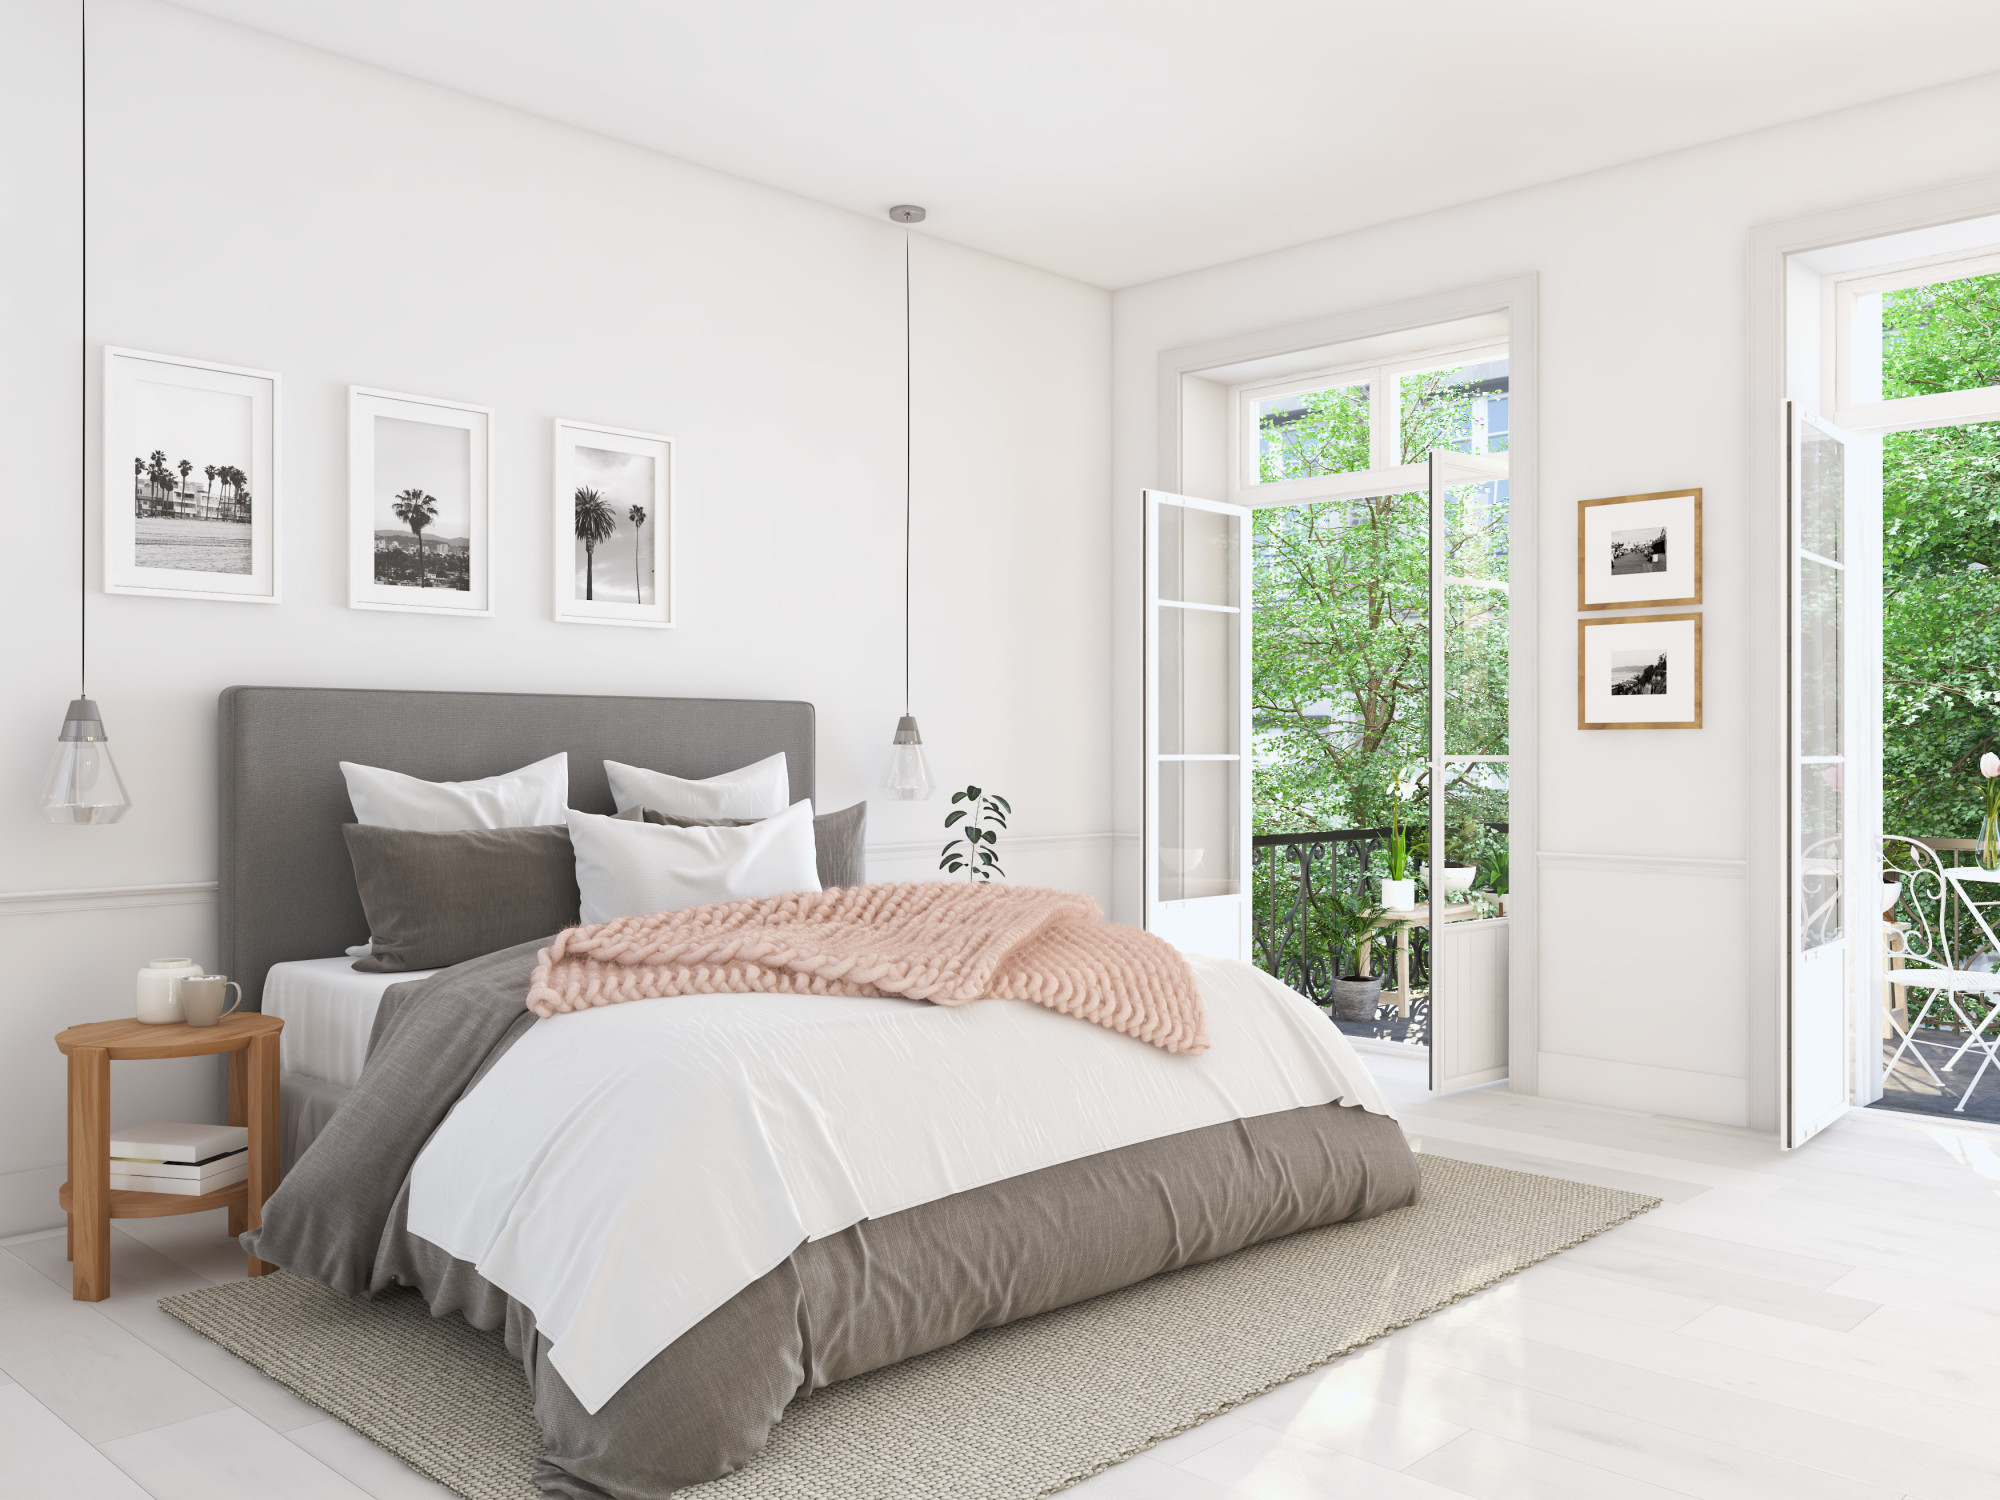 Luxurious Living at Home: 5 Inexpensive Ways to Make Your Bedroom Feel Like a Chic Hotel